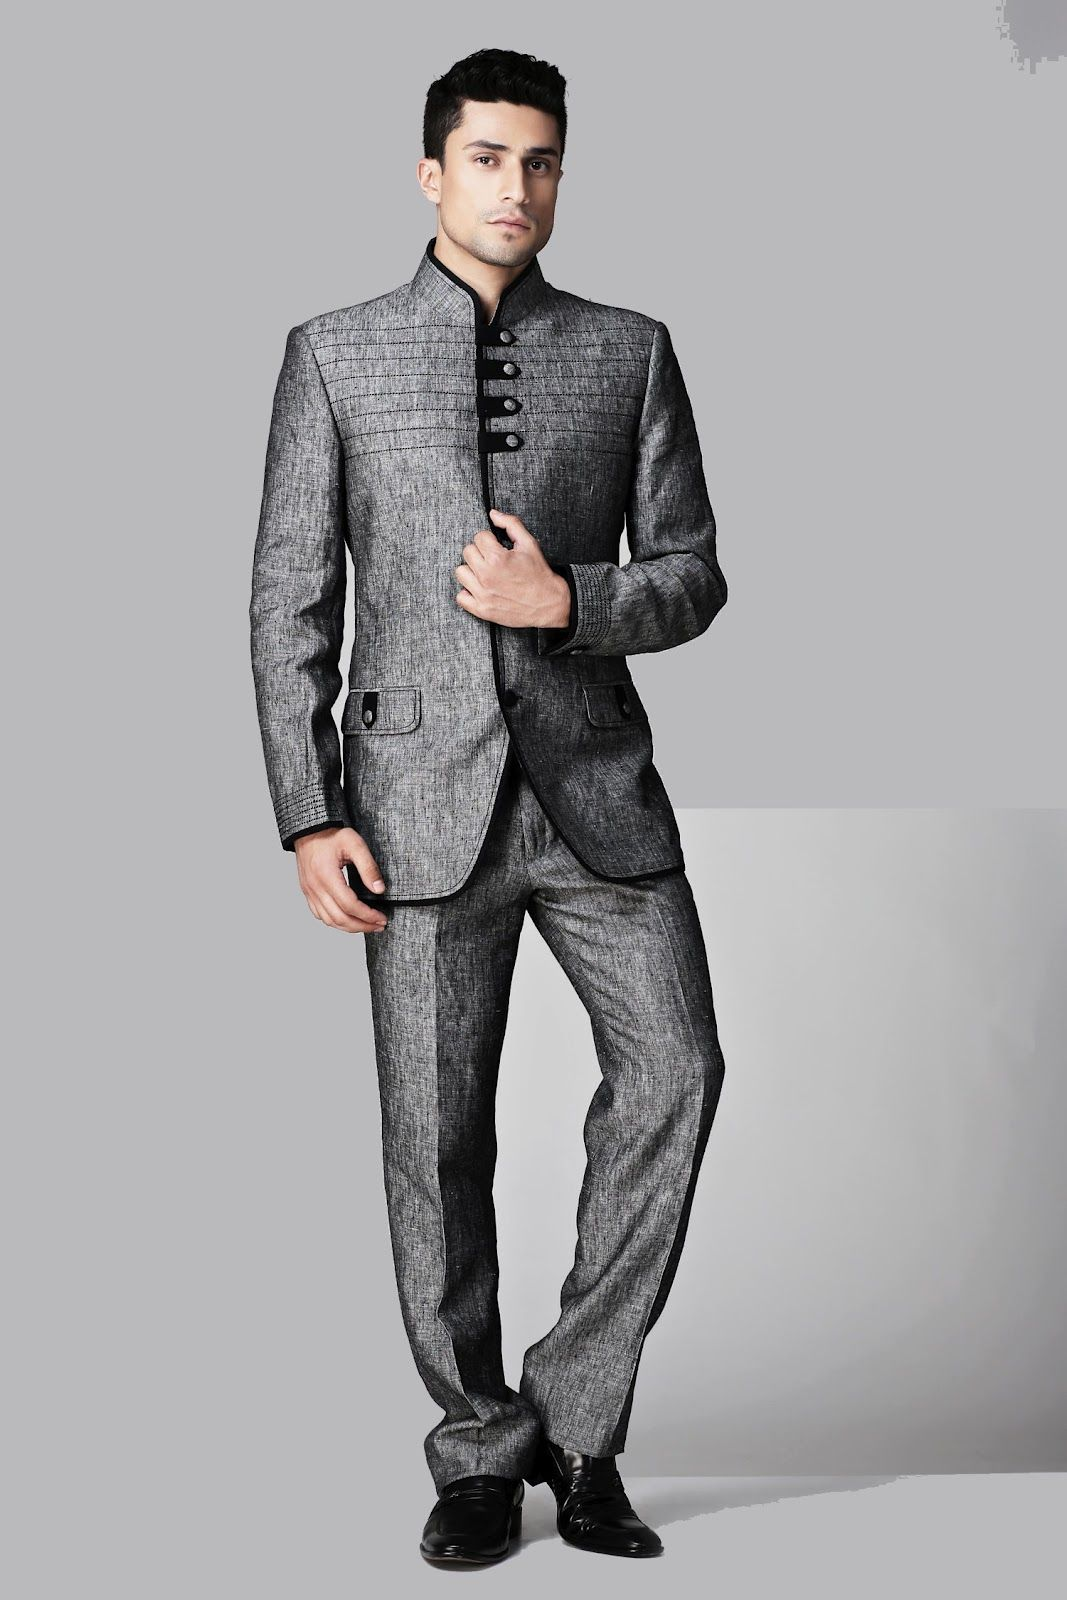 Tips When Choosing Mens Suits for Weddings - | Chic Men's Fashion ...